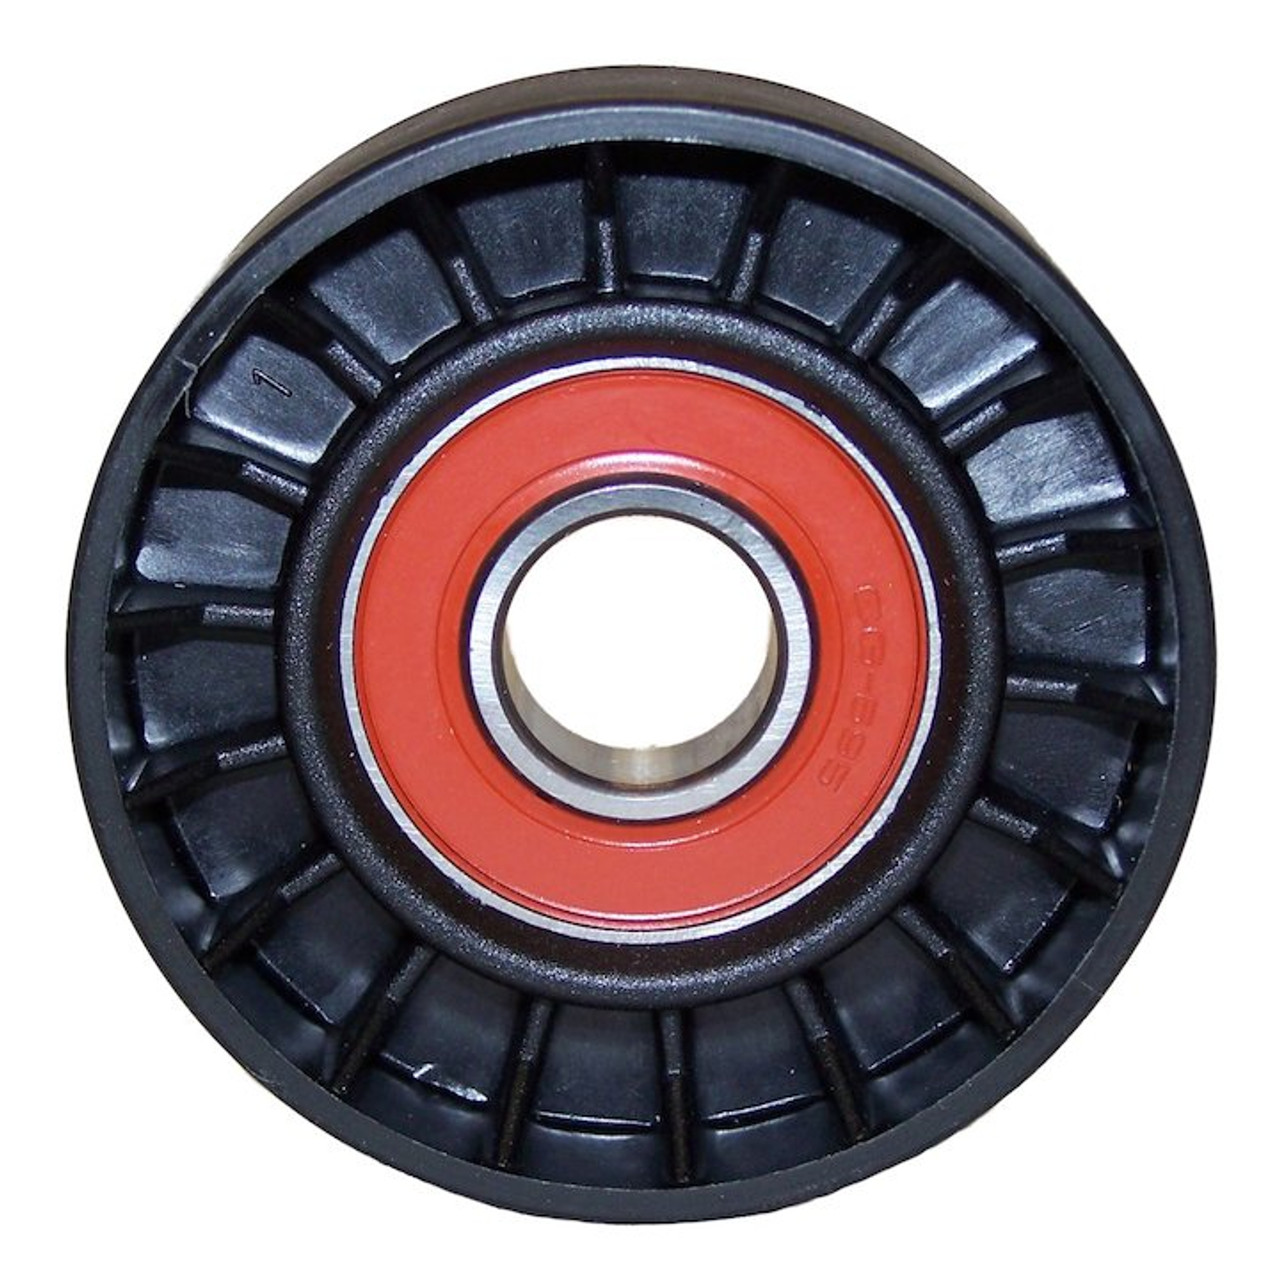 Drive Belt Idler Pulley 4792835aa Fits Lx Dodge Charger 2006 2010 Lx Dodge Magnum 2005 2010 Lx Chrysler 300 2005 2018 Wh Jeep Grand Cherokee Europe 2005 2010